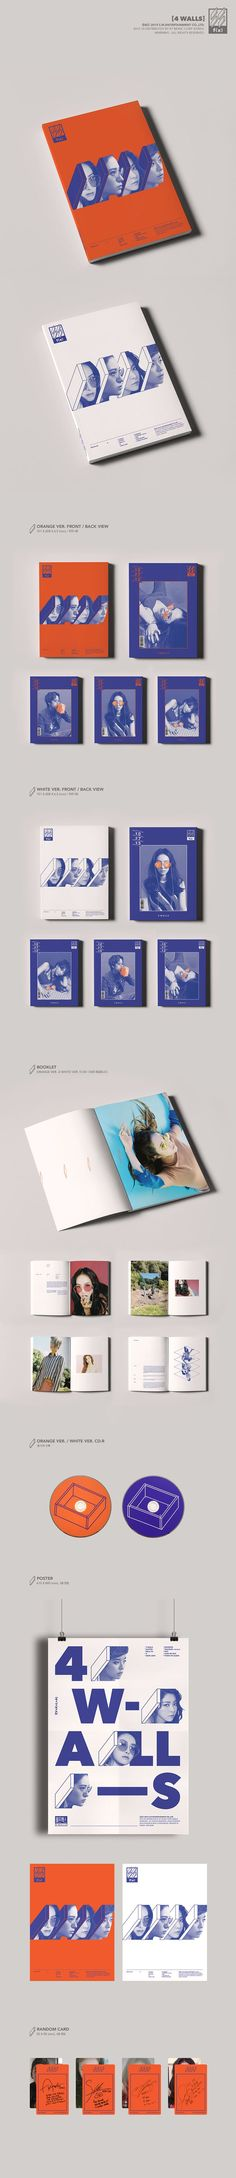 f(x) - 4 Walls album packaging + booklets